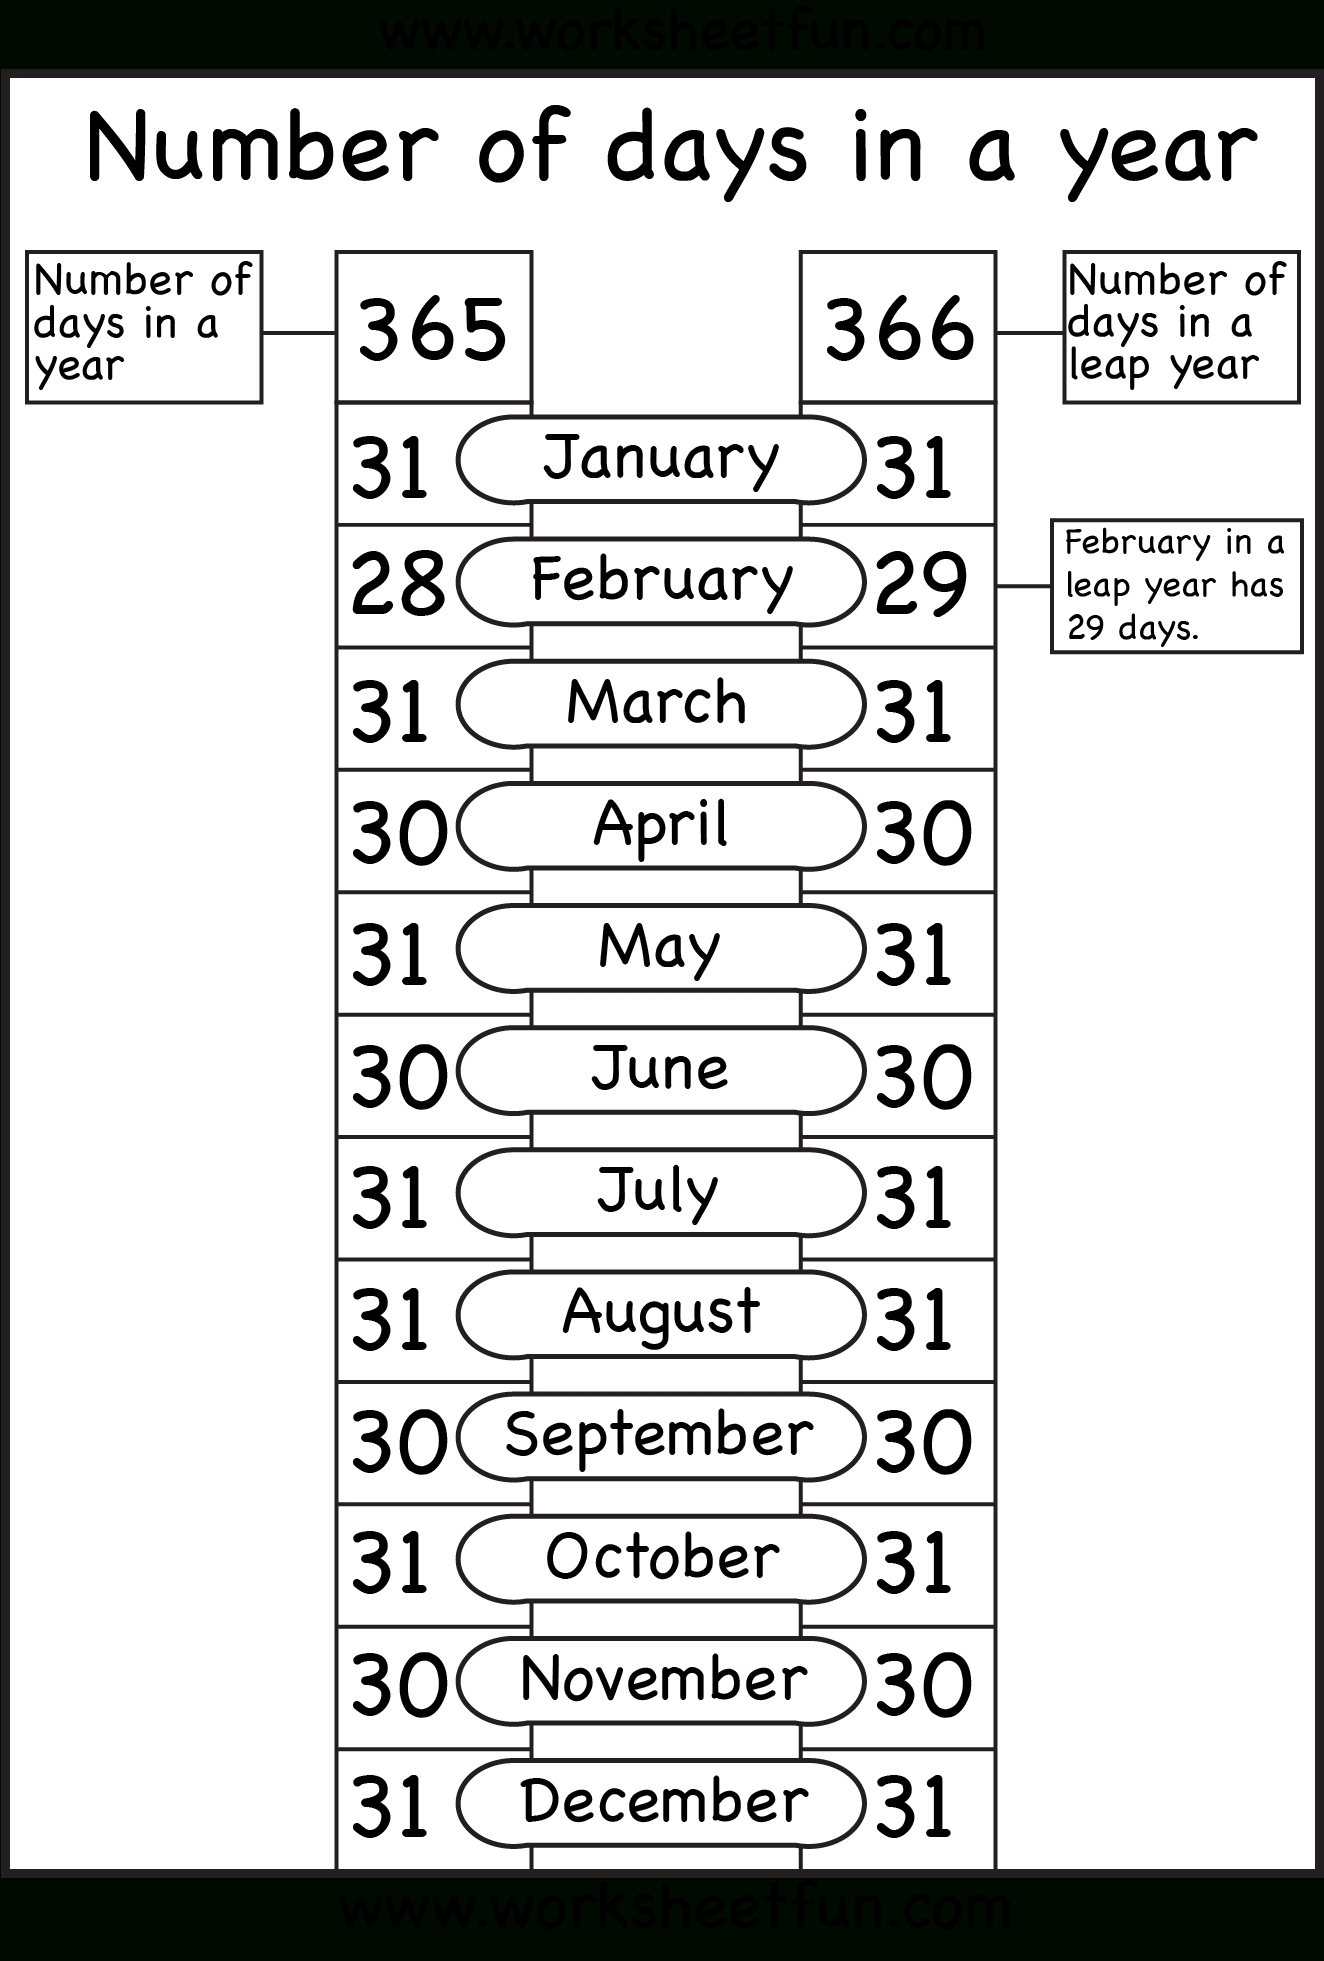 Calendar Numbering The Days 1 To 365 | Calendar Template 2020 Calendars With 365 Numbbering